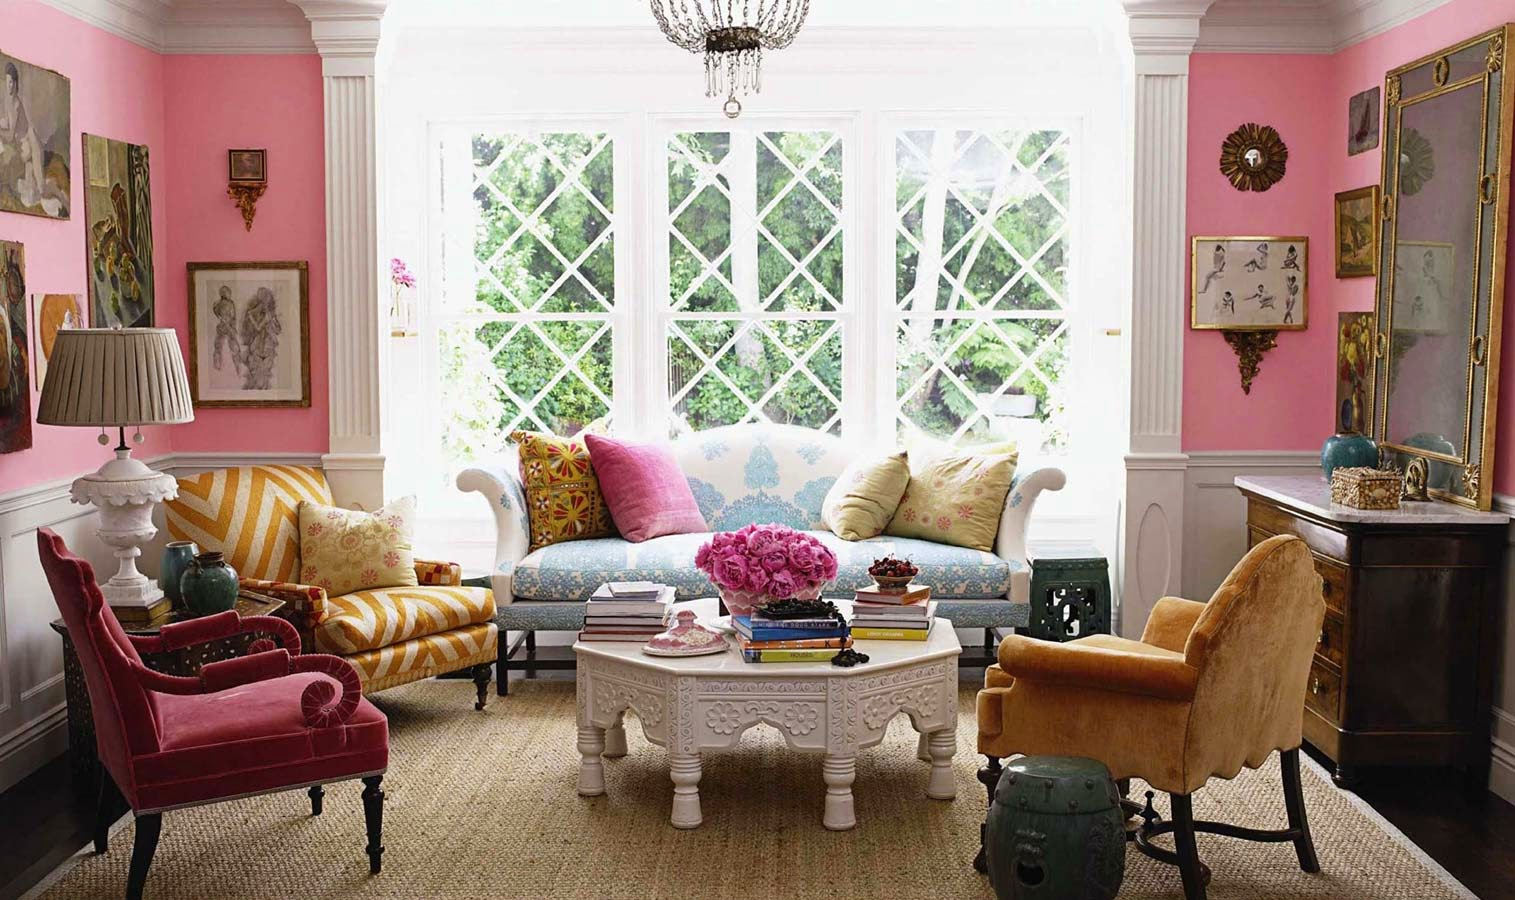 This Preppy Eclectic room is playful colorful